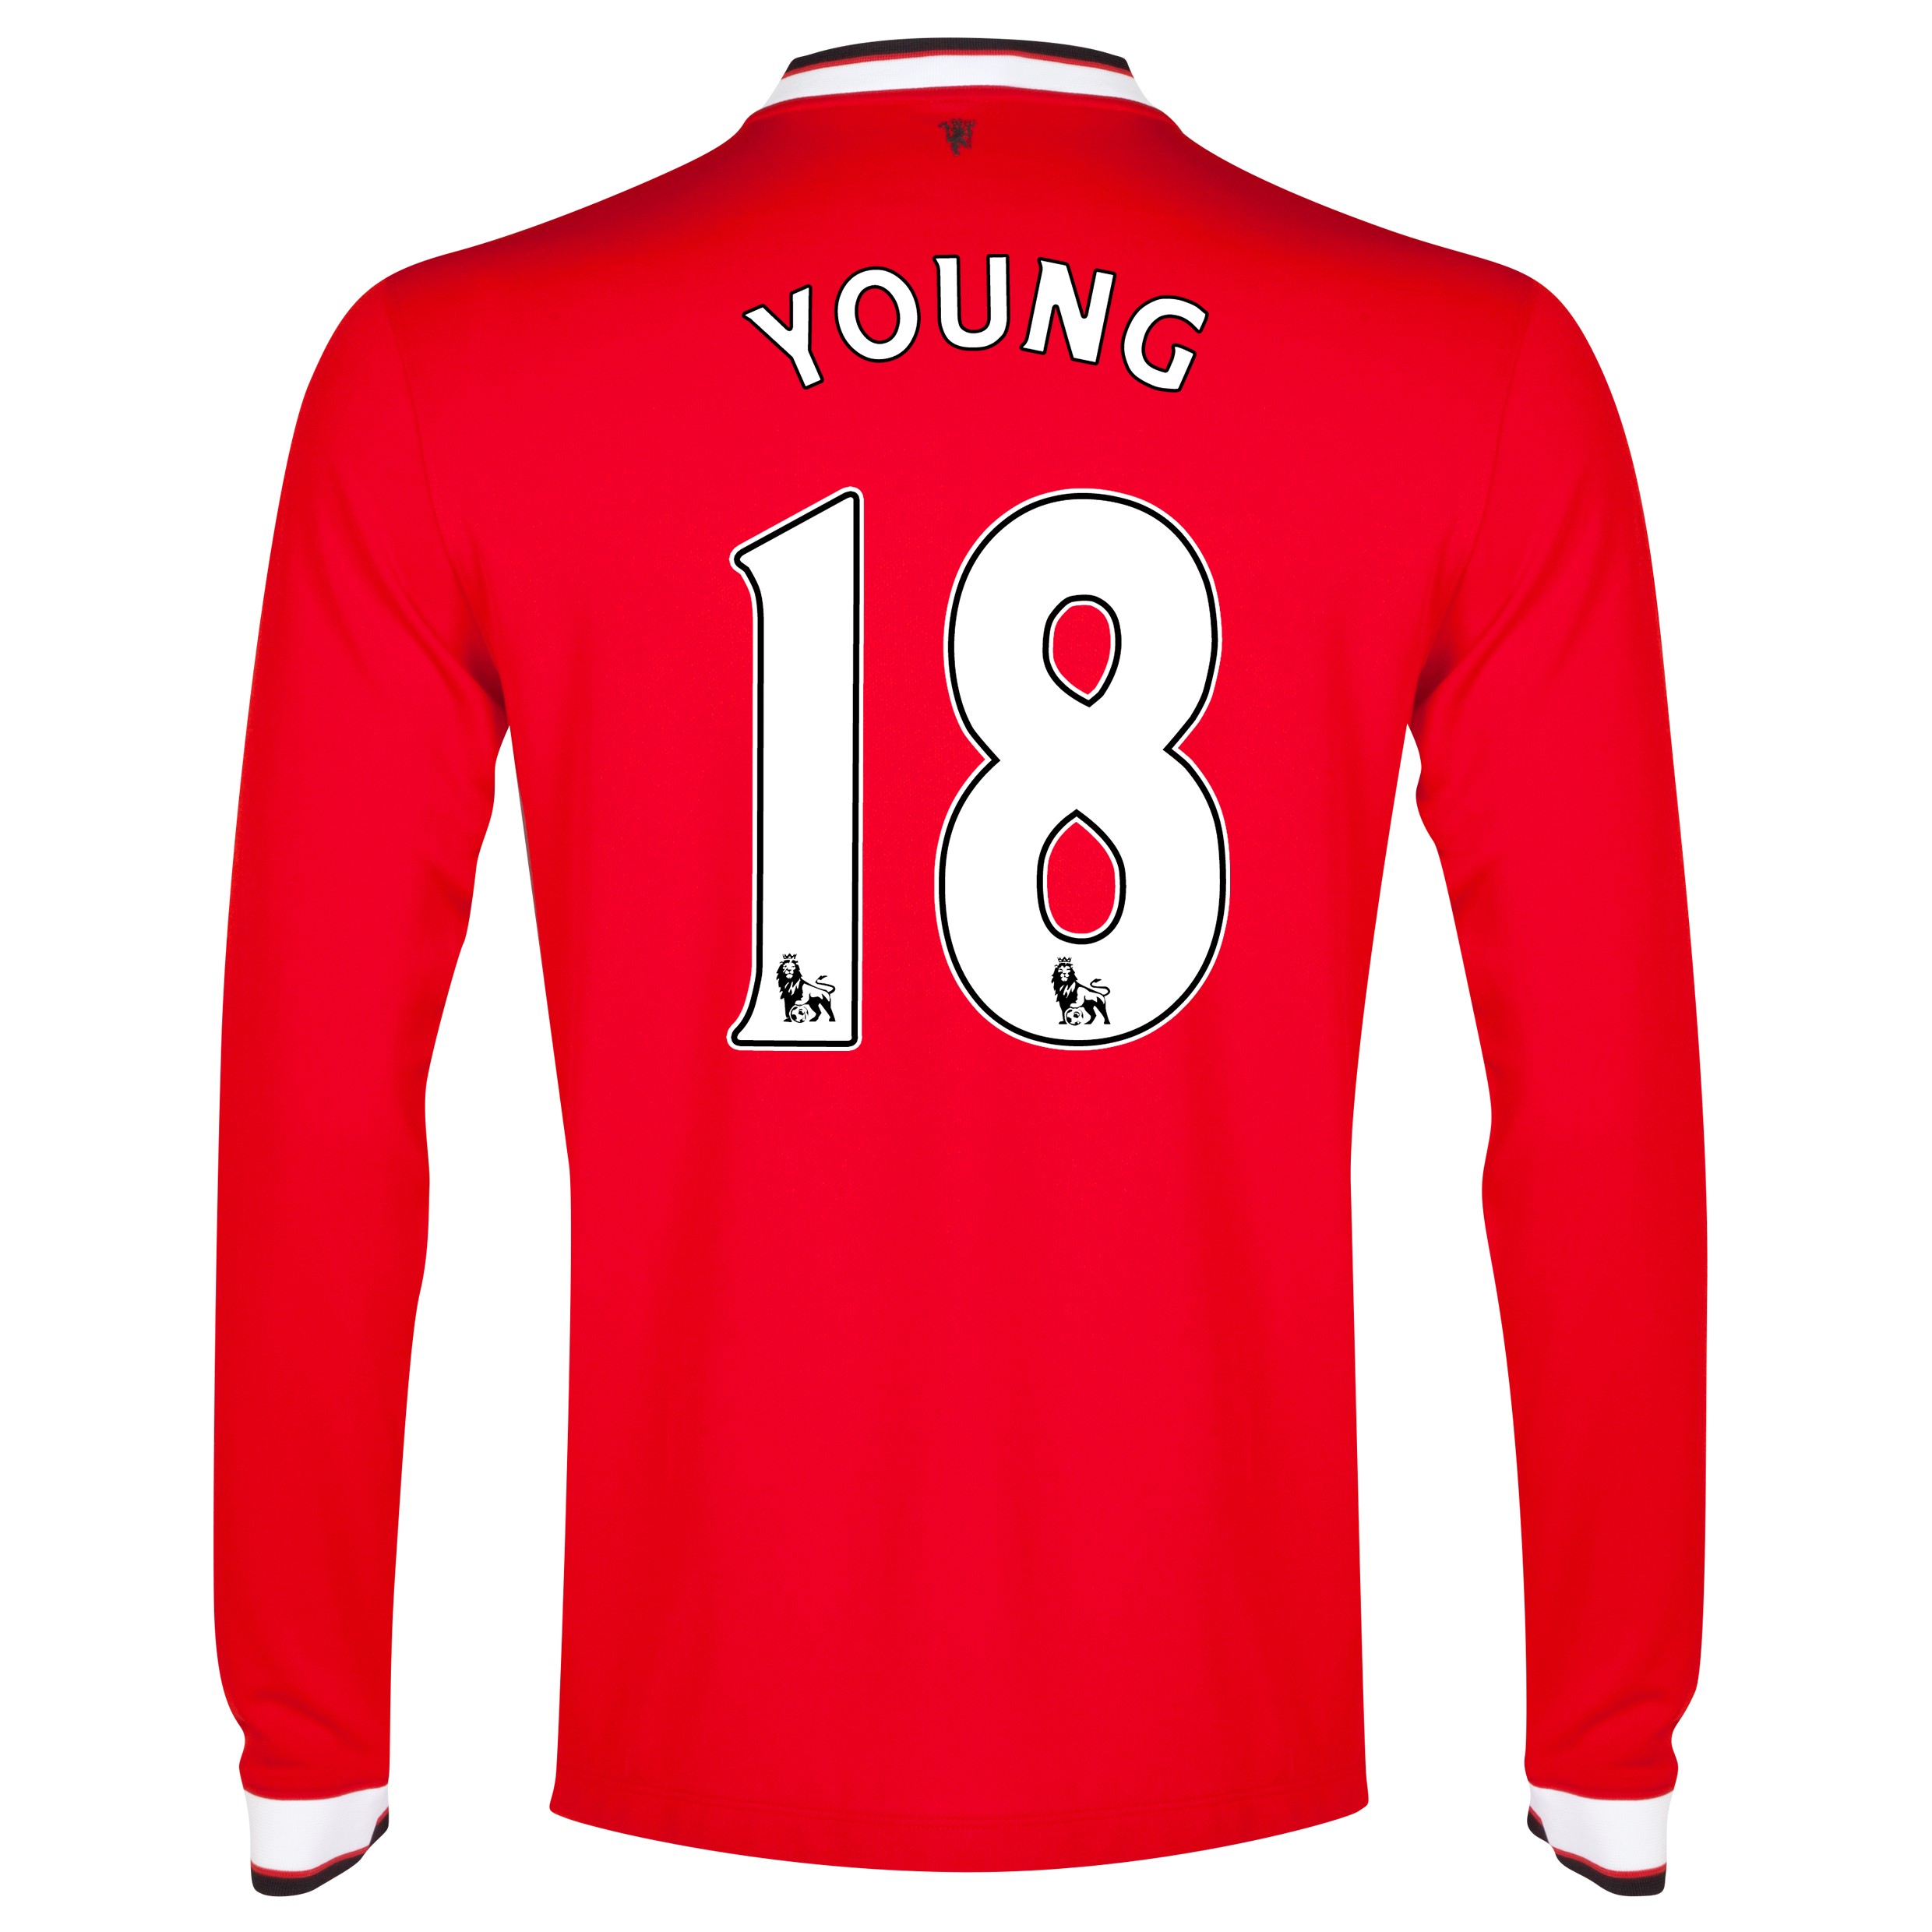 Manchester United Home Shirt 2014/15 - Long Sleeve - Kids Red with Young 18 printing